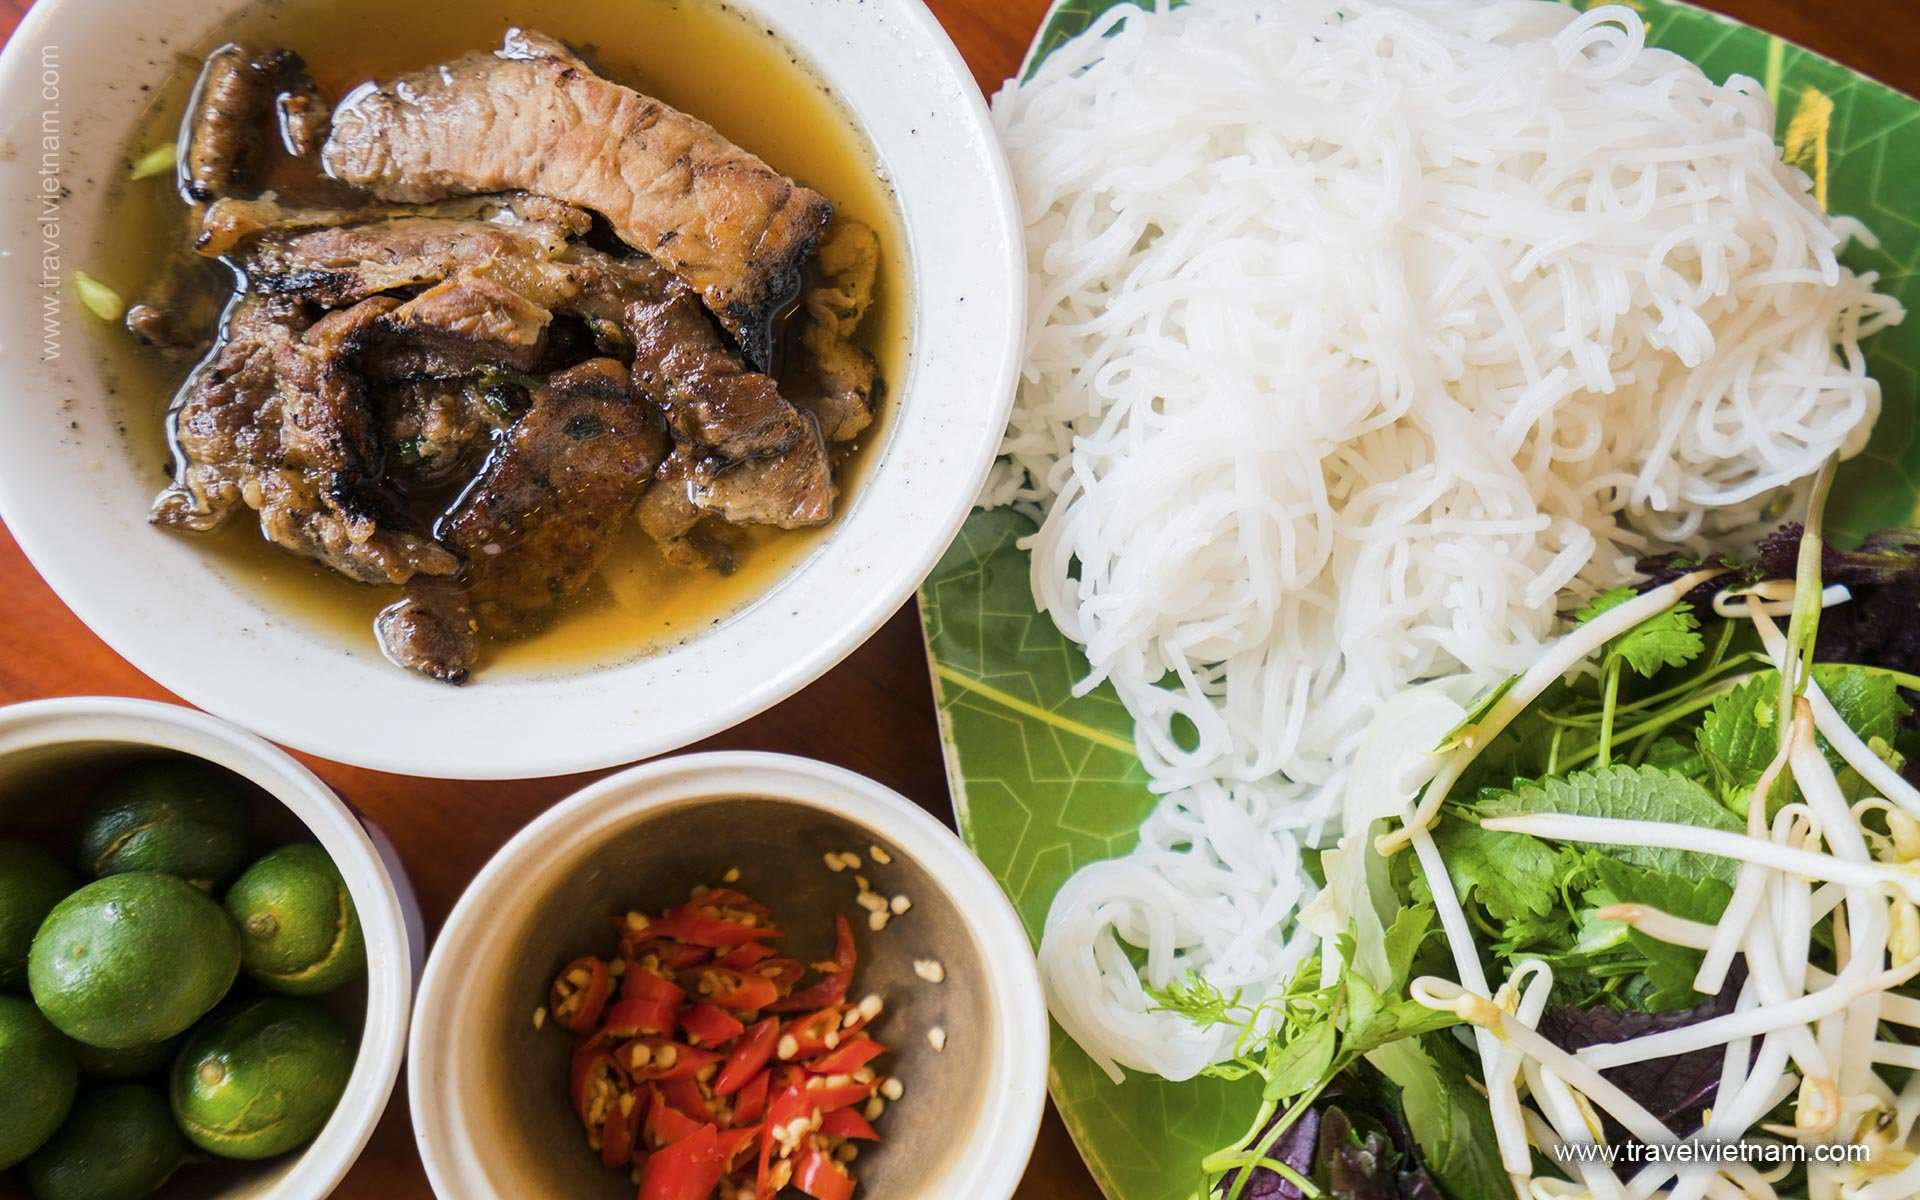 Vietnam Culinary Delights - 12 Days